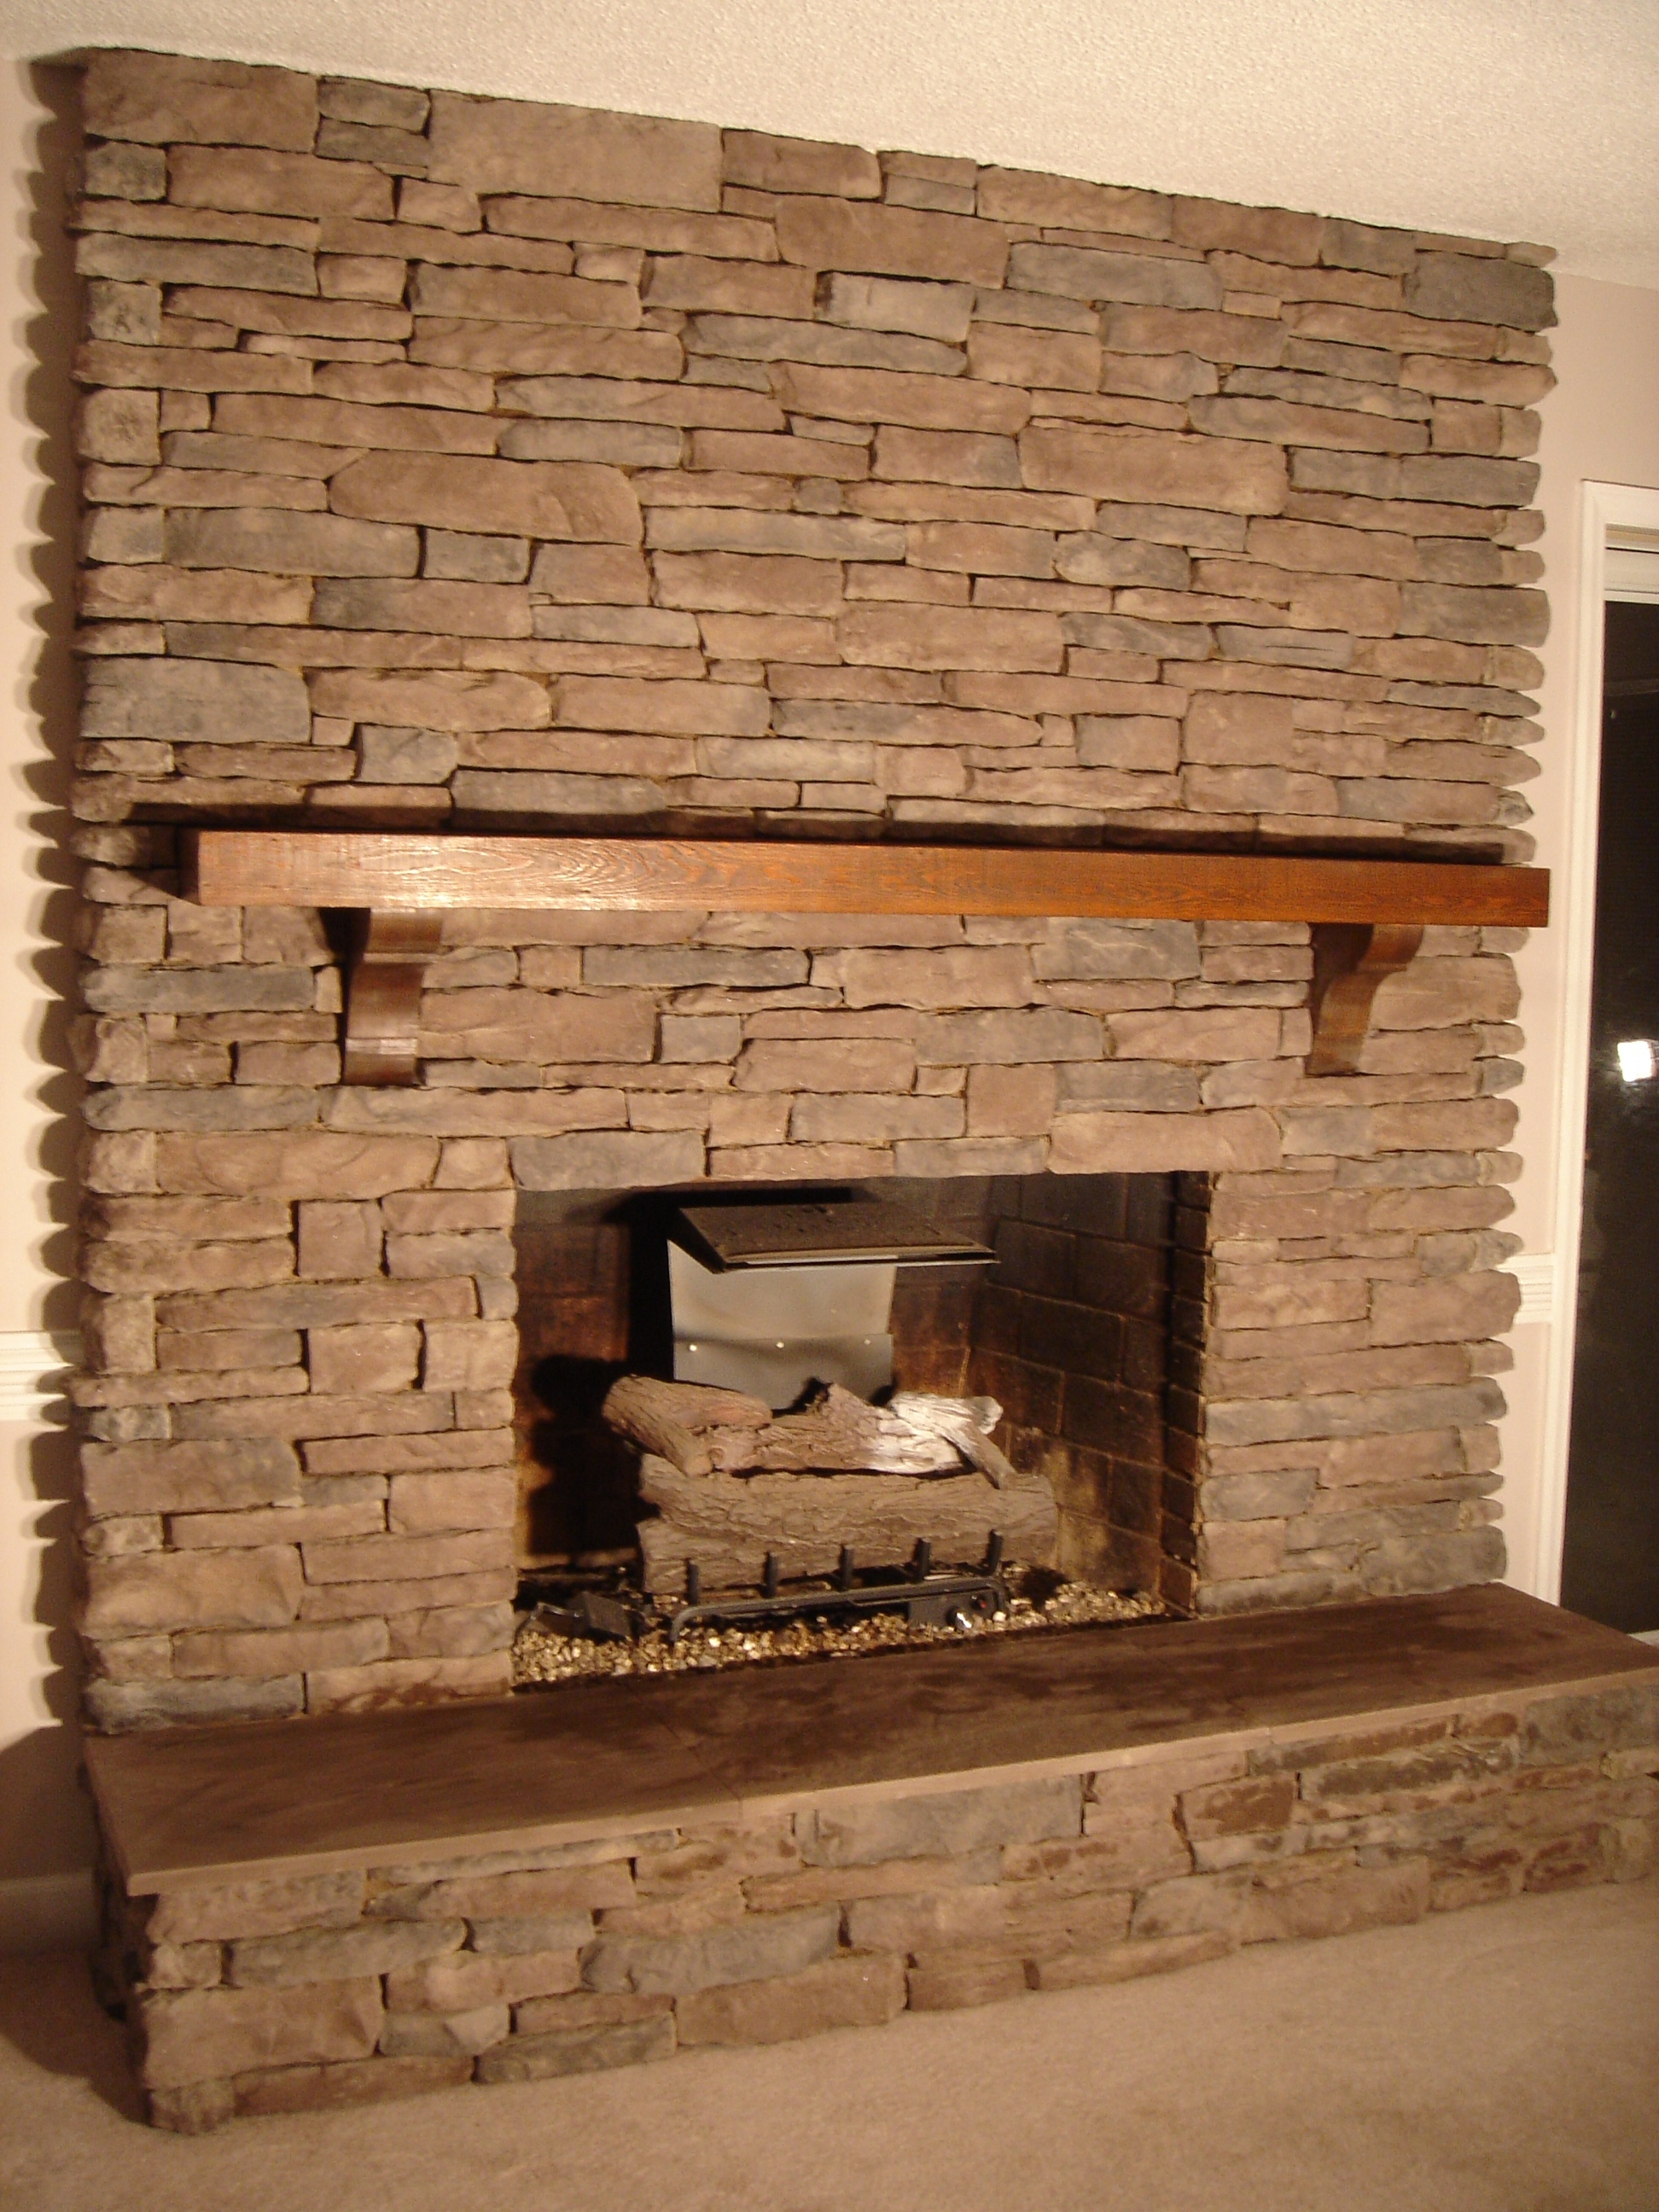 Brick Fireplace Design With Old Style And System